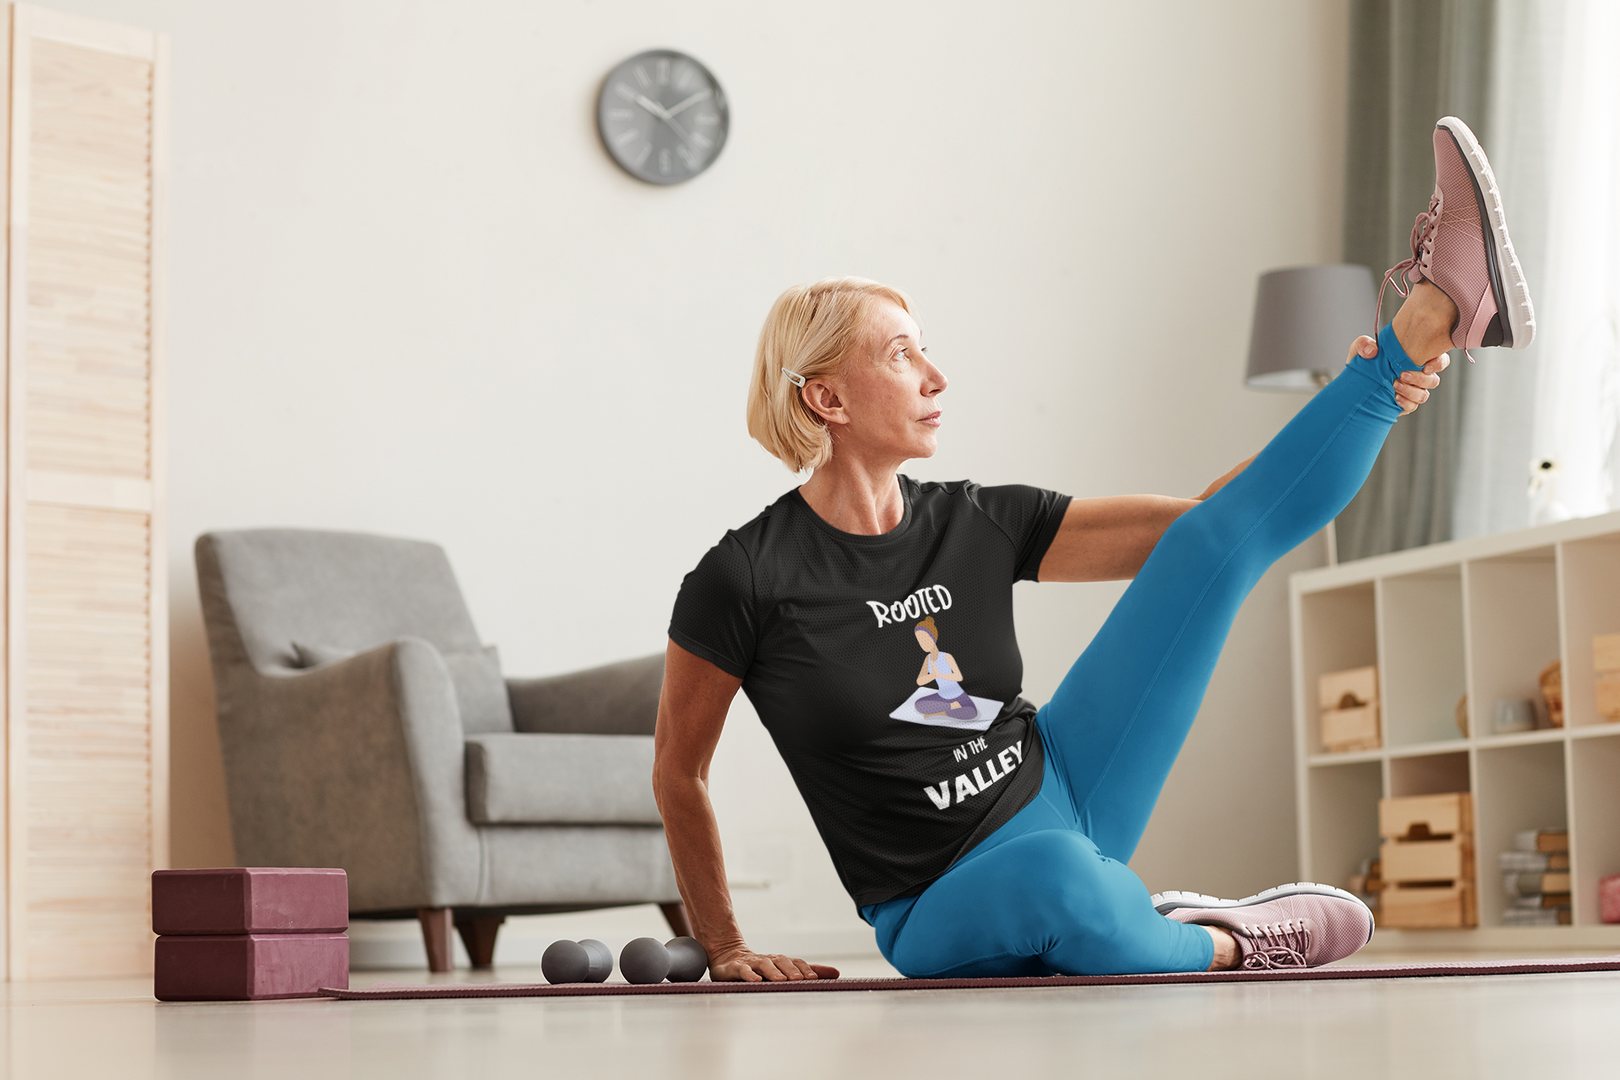 t-shirt-mockup-of-a-woman-stretching-at-